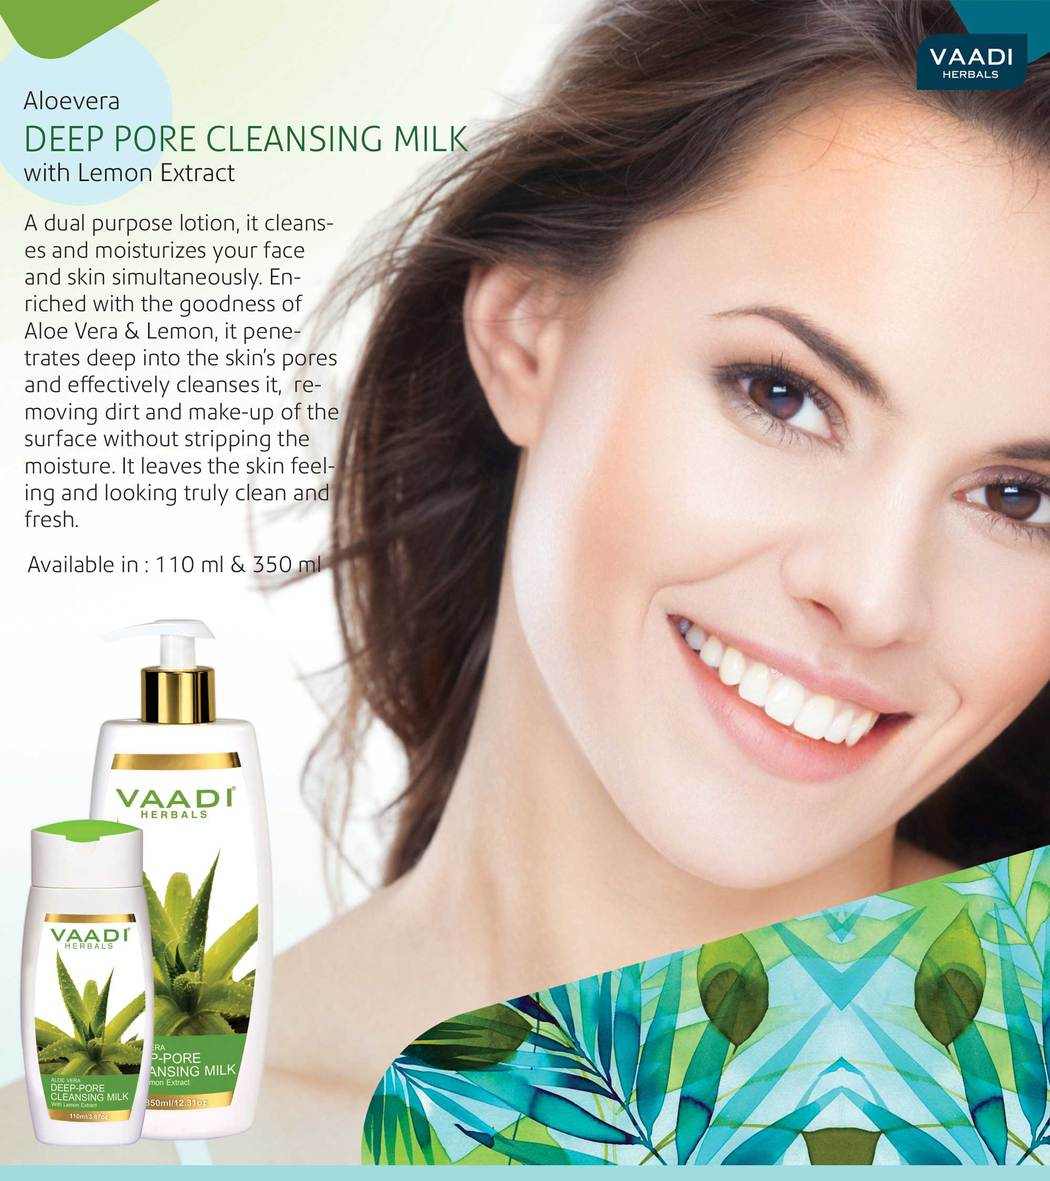 Organic Aloe Vera Deep Pore Cleansing Milk with Lemon Extract - Cleanses & Softens Skin - Locks In Moisture All Day (3 x 110 ml/ 4 fl oz)